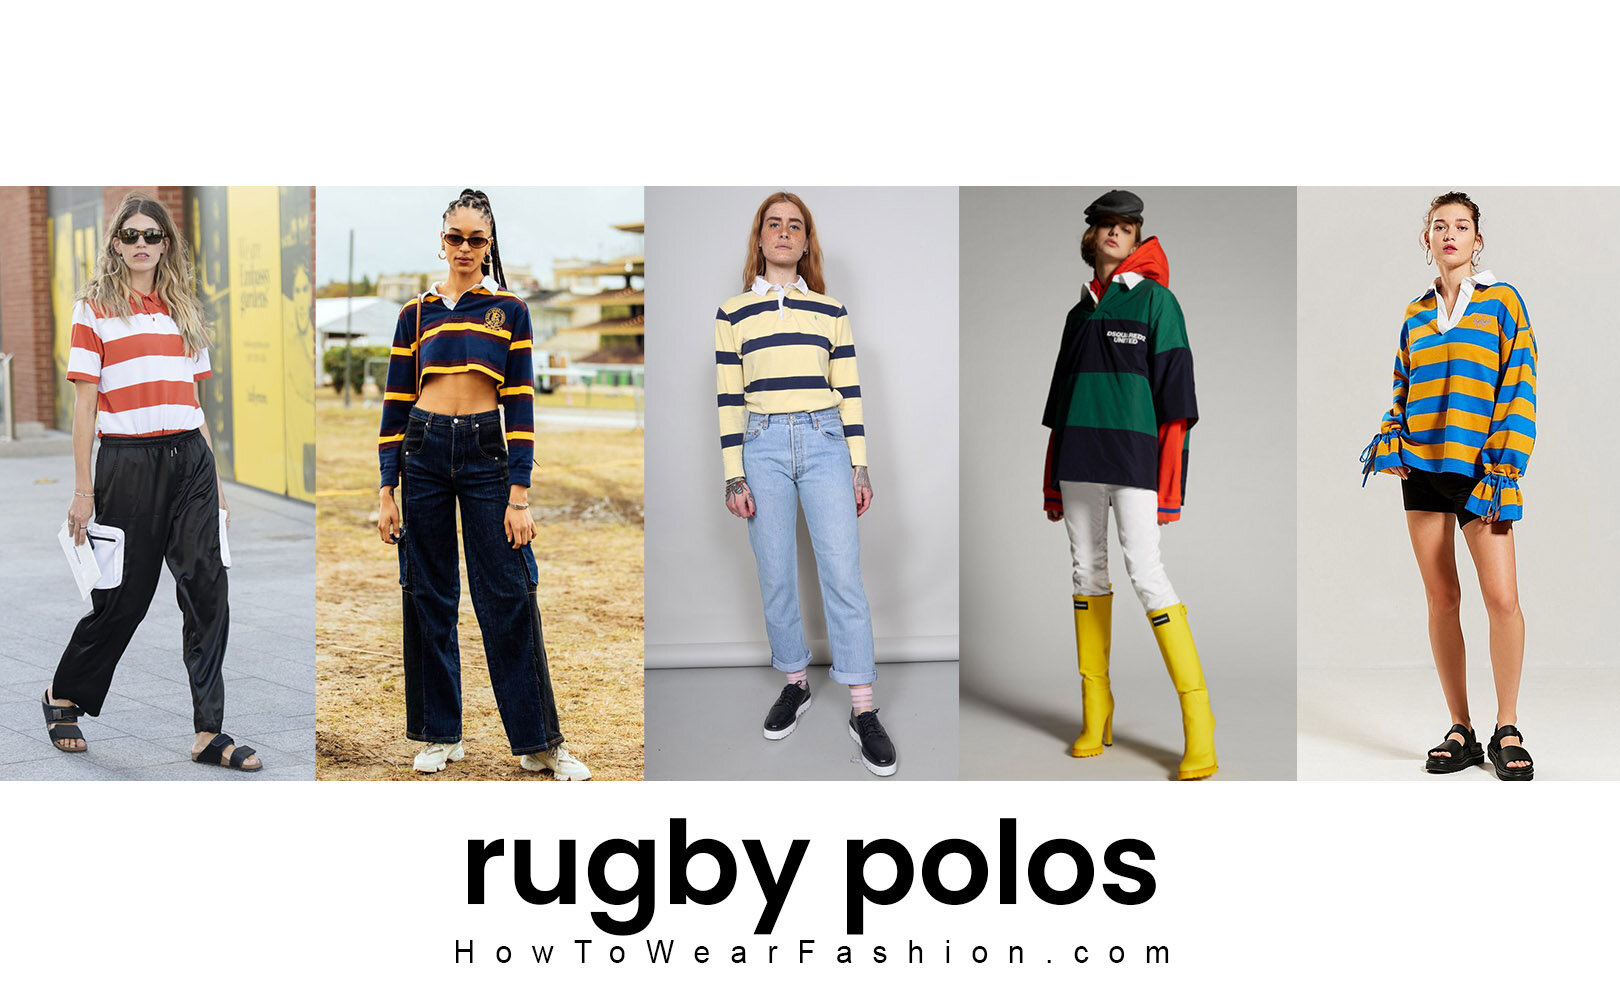 Trend Rugby Polo Howtowear Fashion